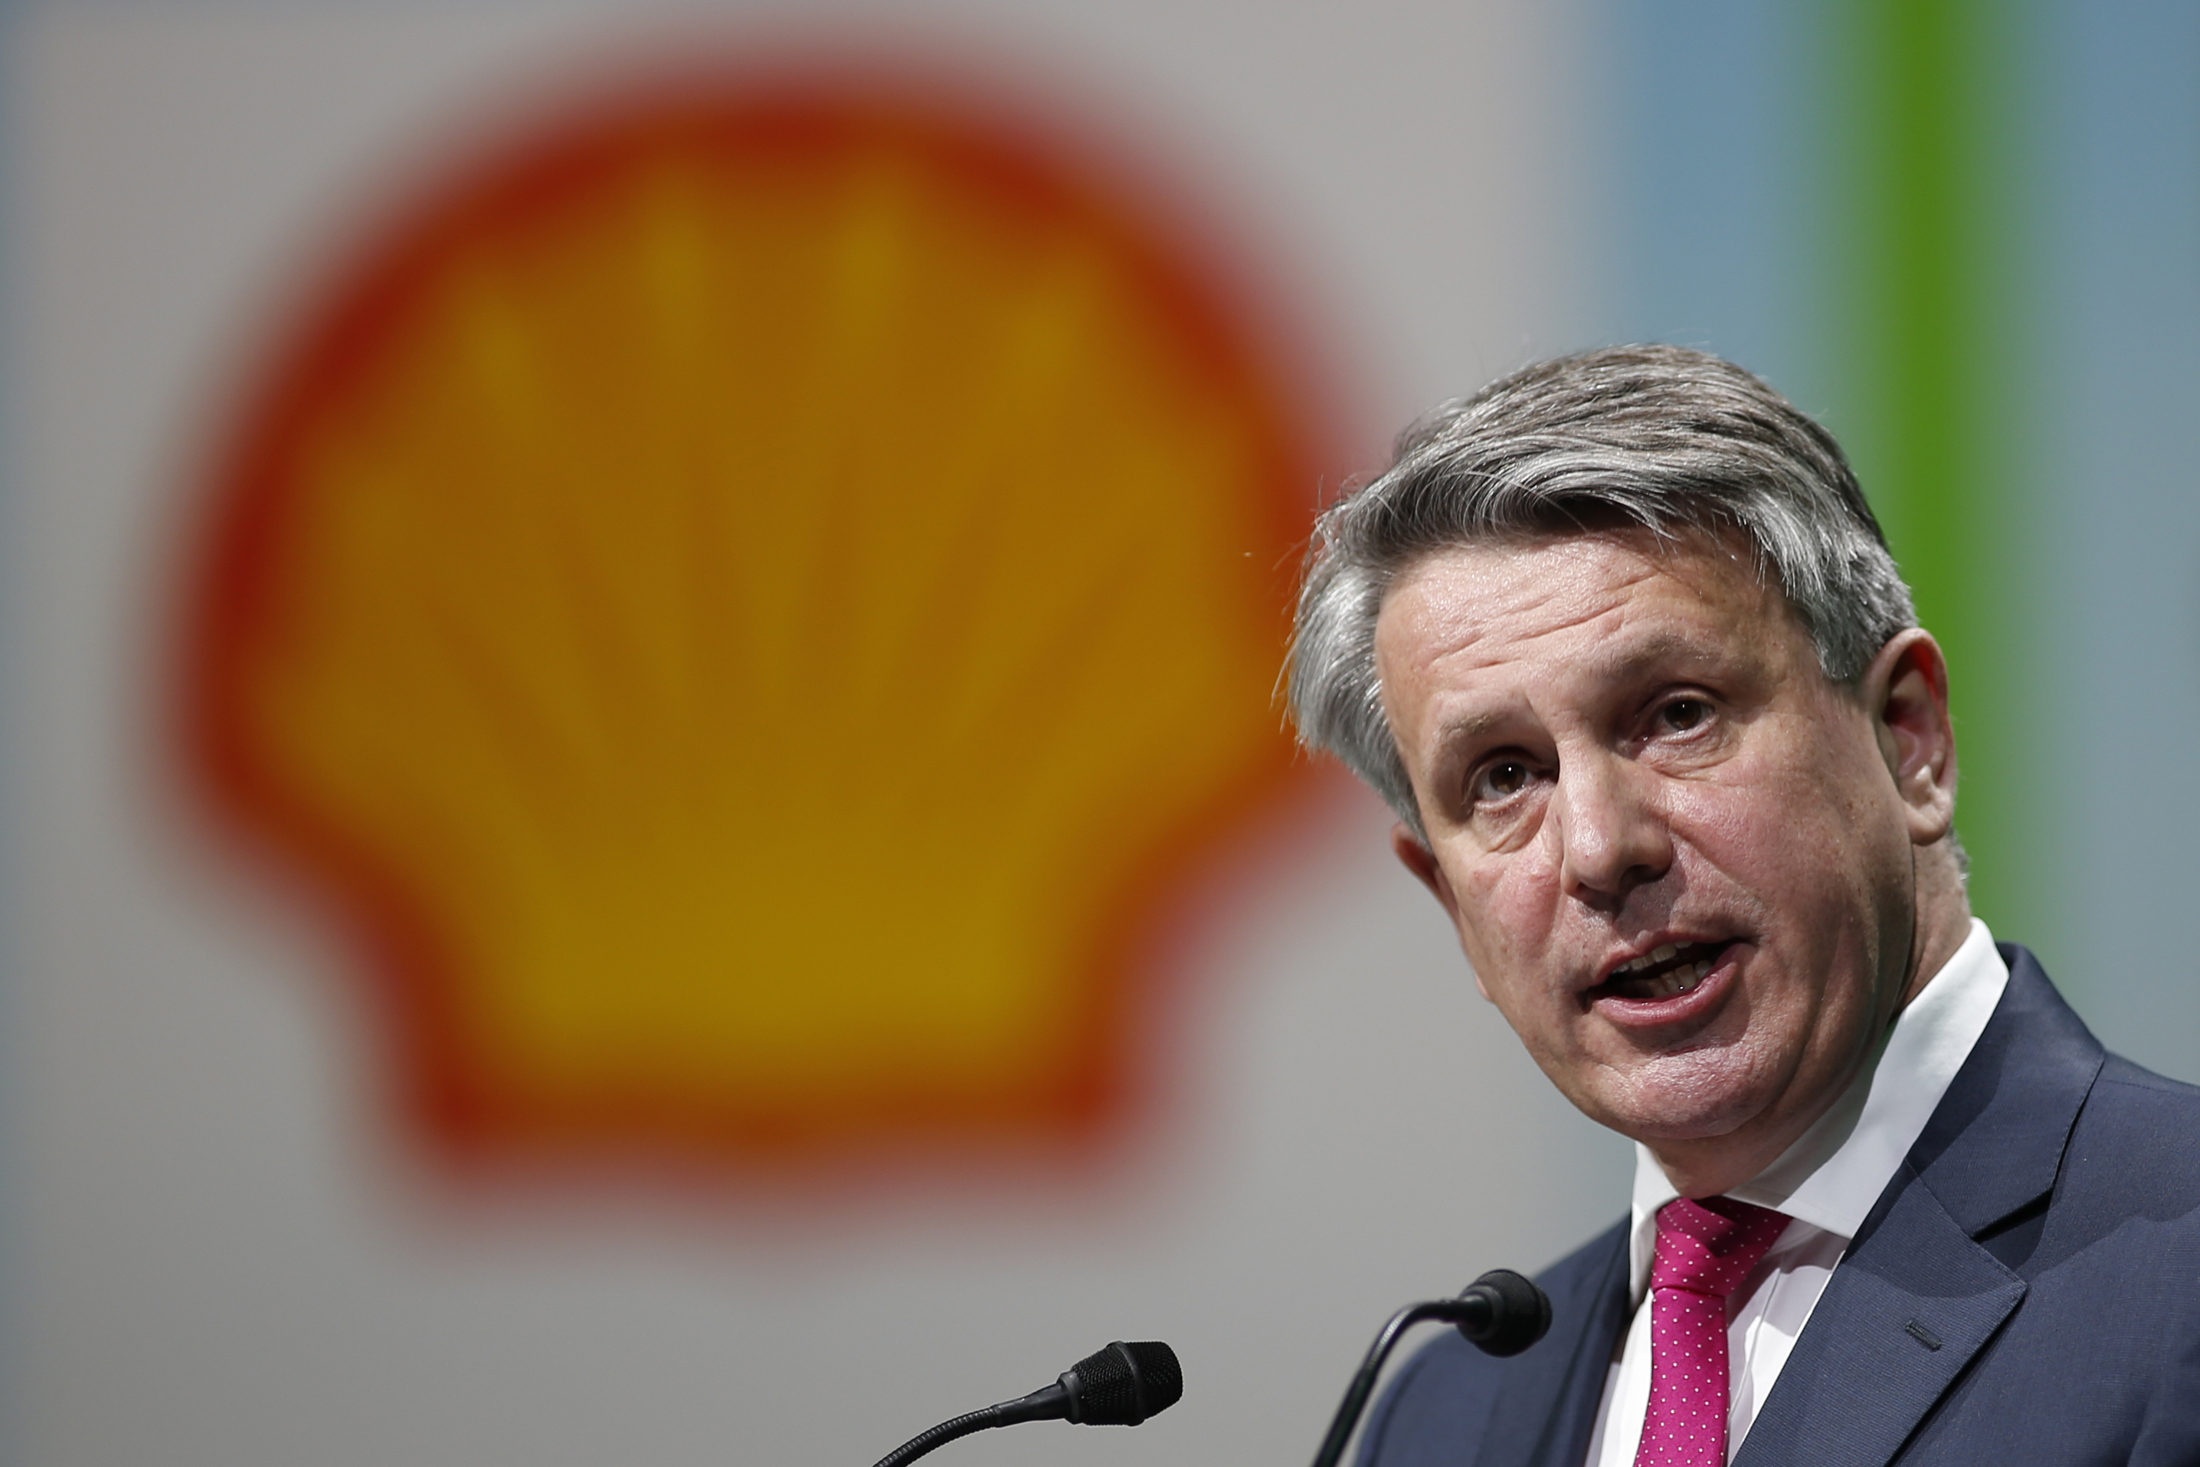 ben-van-beurden-chief-executive-officer-of-royal-dutch-shell-petrole-gaz-energies-fossiles